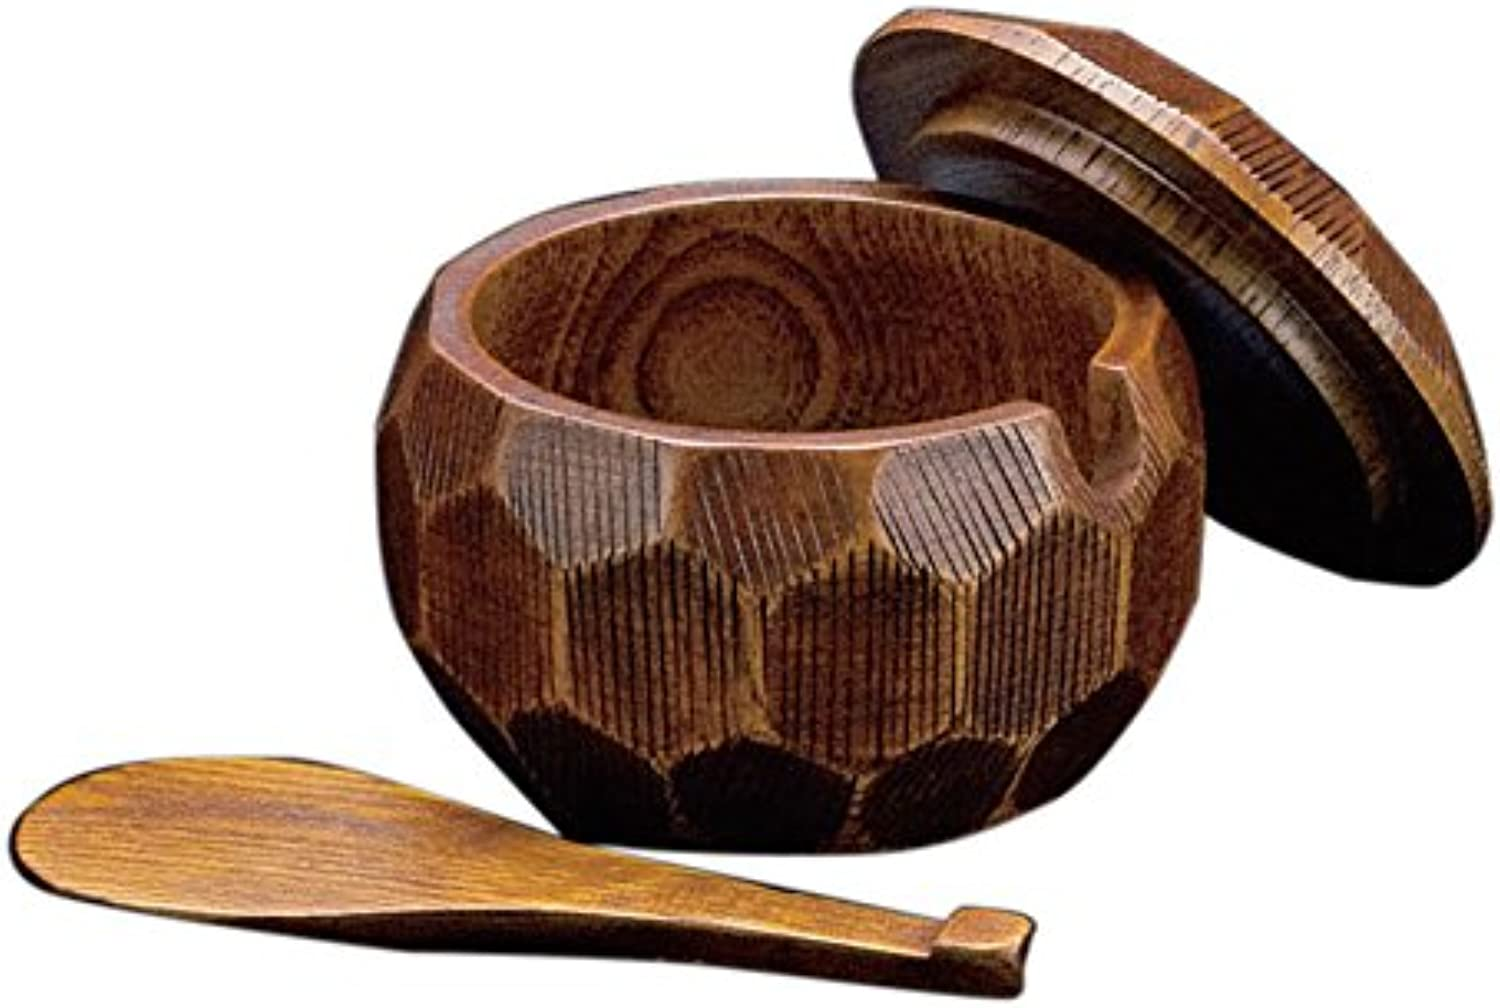 Yamako sliding lacquer wooden rice charger set (with lid) in 25 892 (Japan import   The package and the manual are written in Japanese)